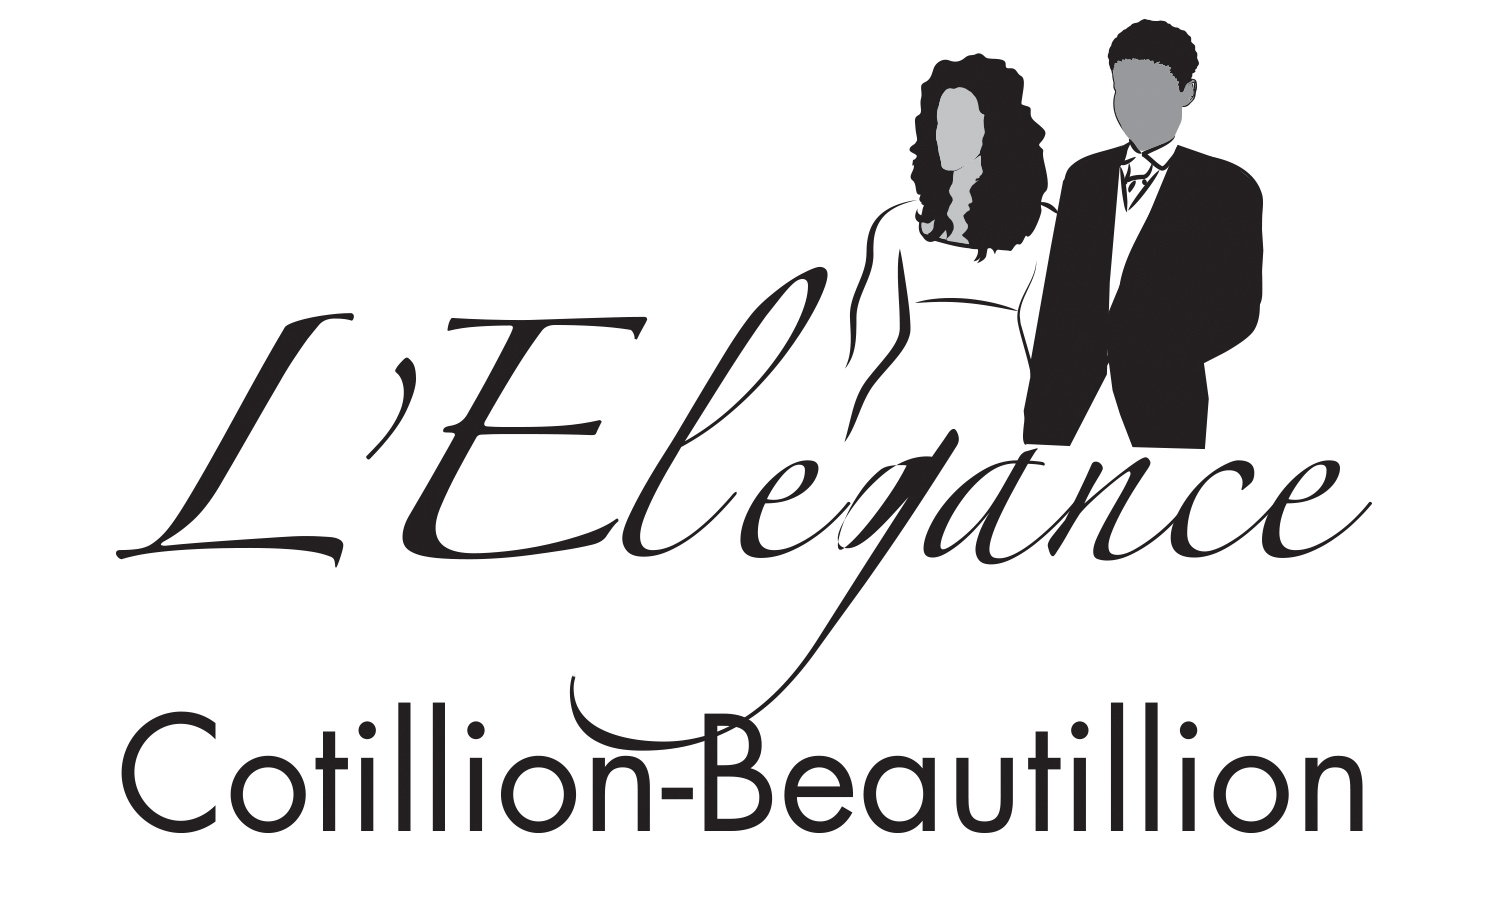 L'Elegance Cotillion-Beautillion